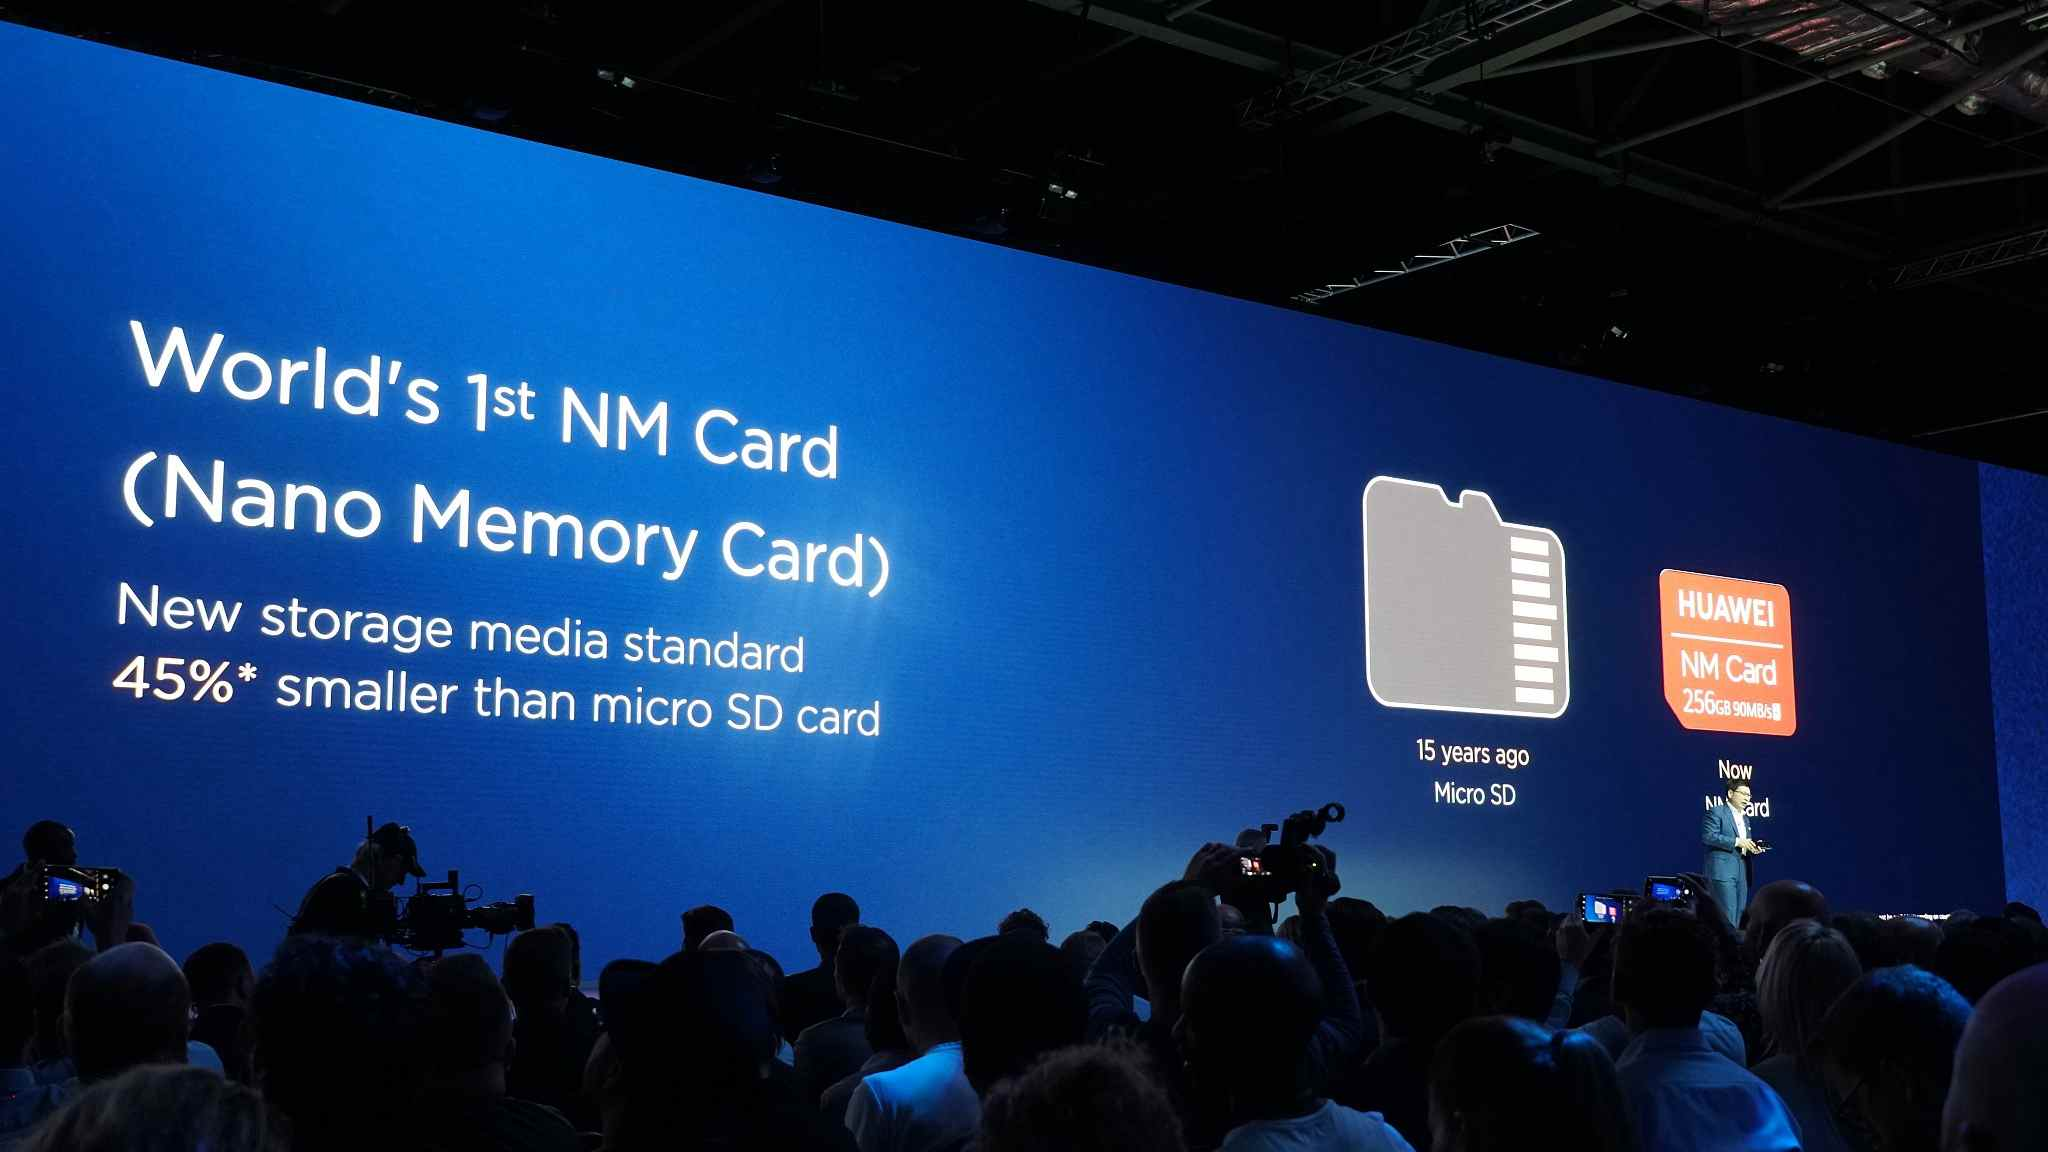 Huawei's self-developed NM cards feature transfer speeds of